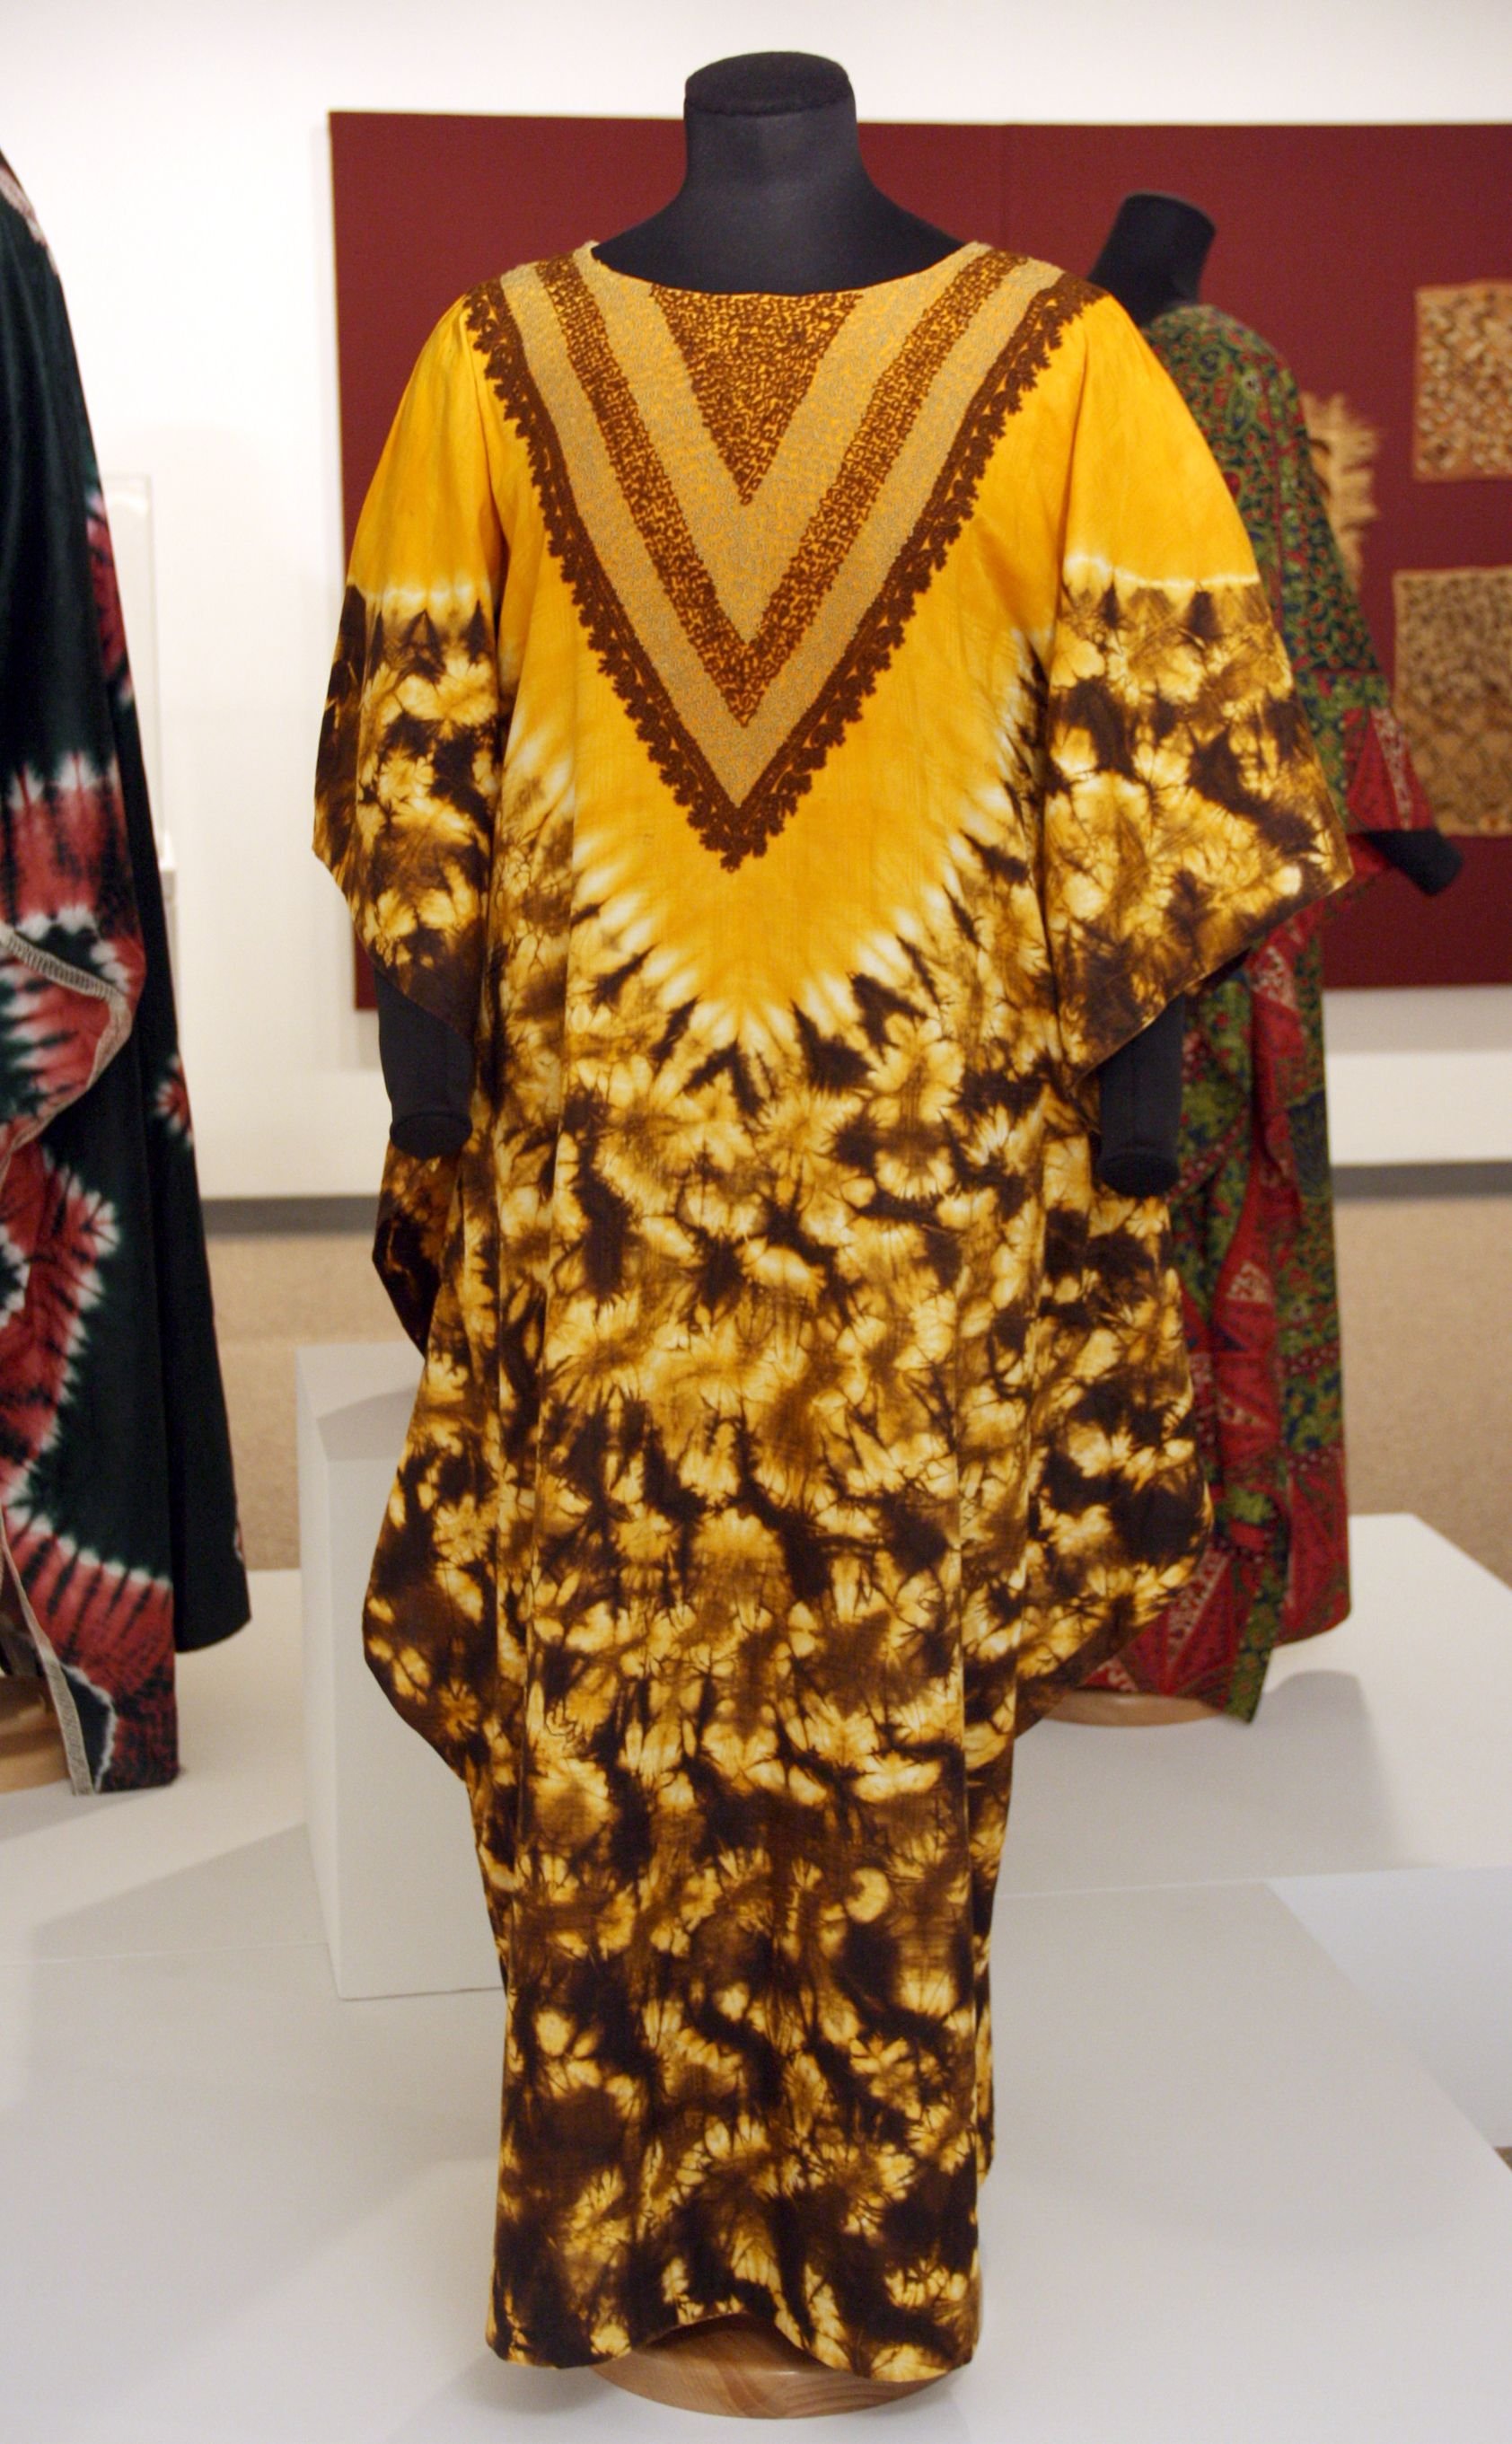 Dyed M Boubou Featured In Measure Of Earth Textiles And Territory In West Africa Opening At The African Ameri African Textiles African Fashion Royal Fashion